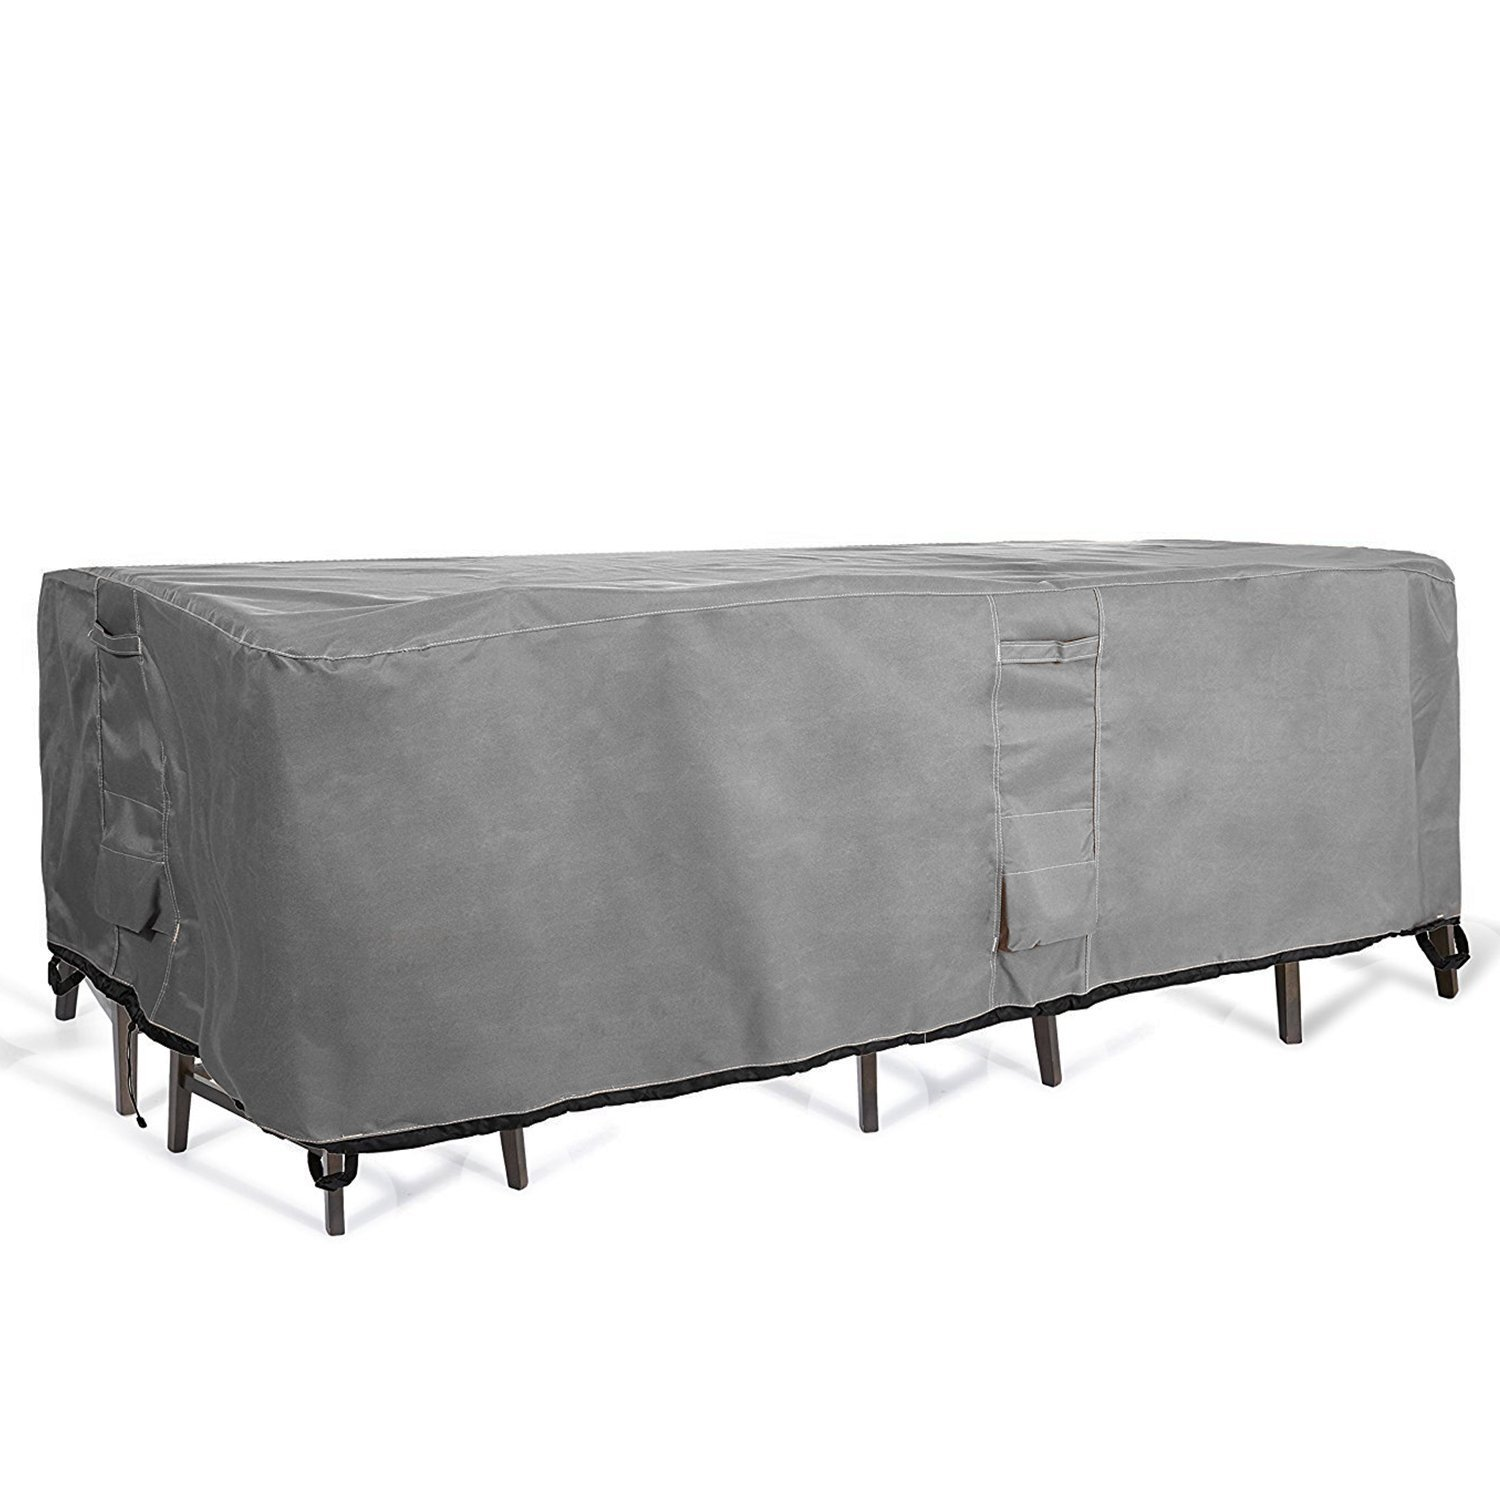 KHOMO GEAR - Titan Series - Patio Table & Chair Set Cover - Durable and Water Resistant Outdoor Furniture Cover, Medium Size